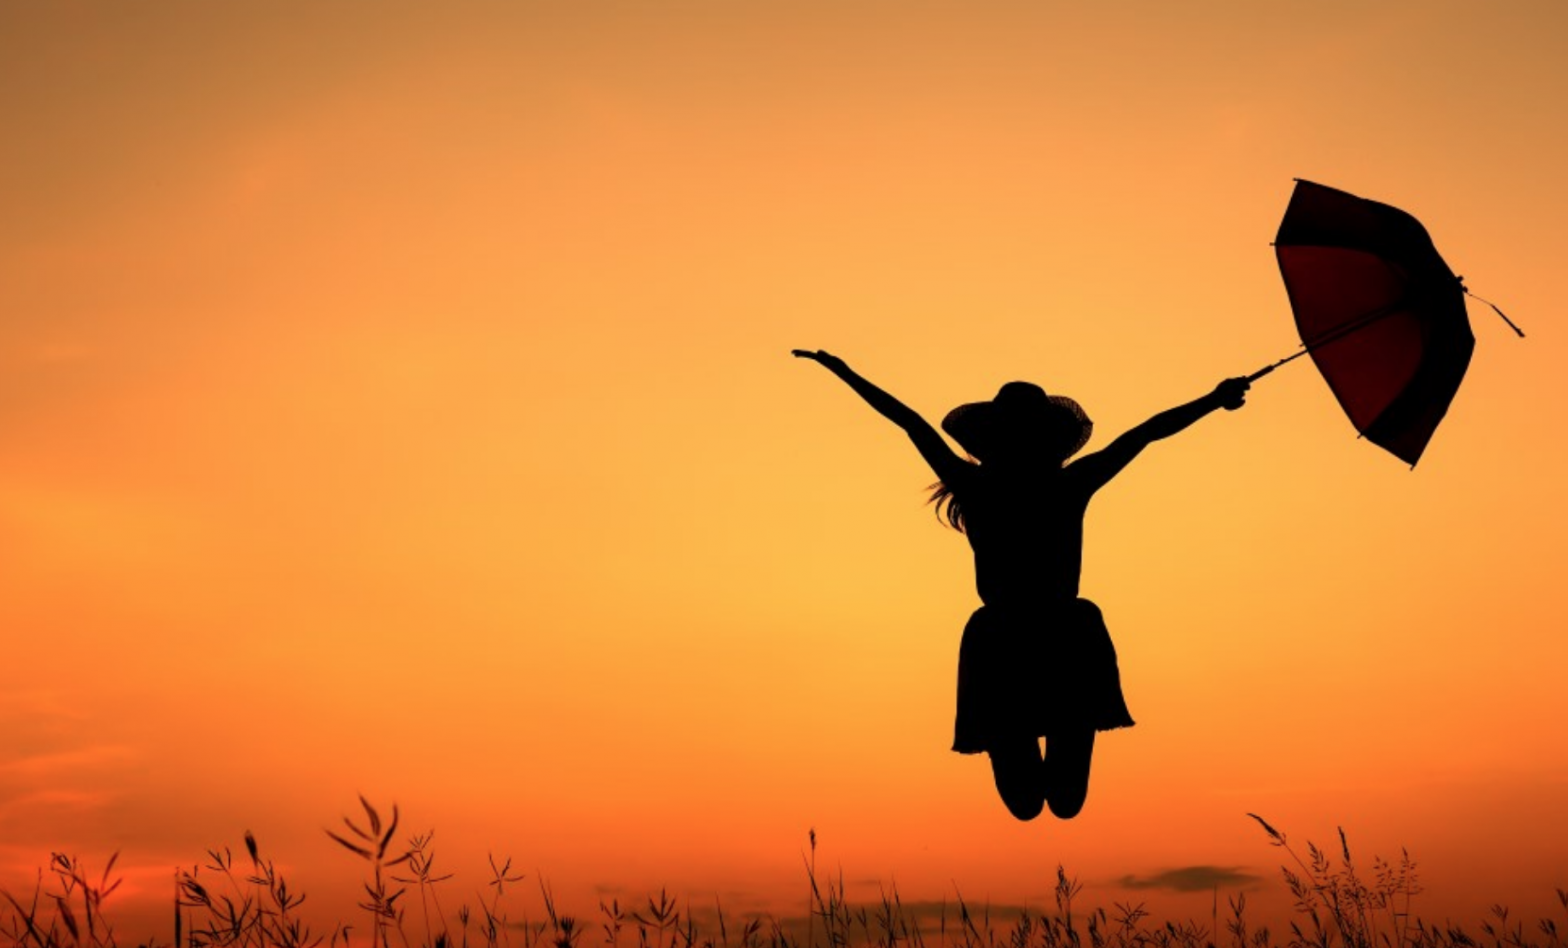 6 RULES FOR A HAPPIER LIFE